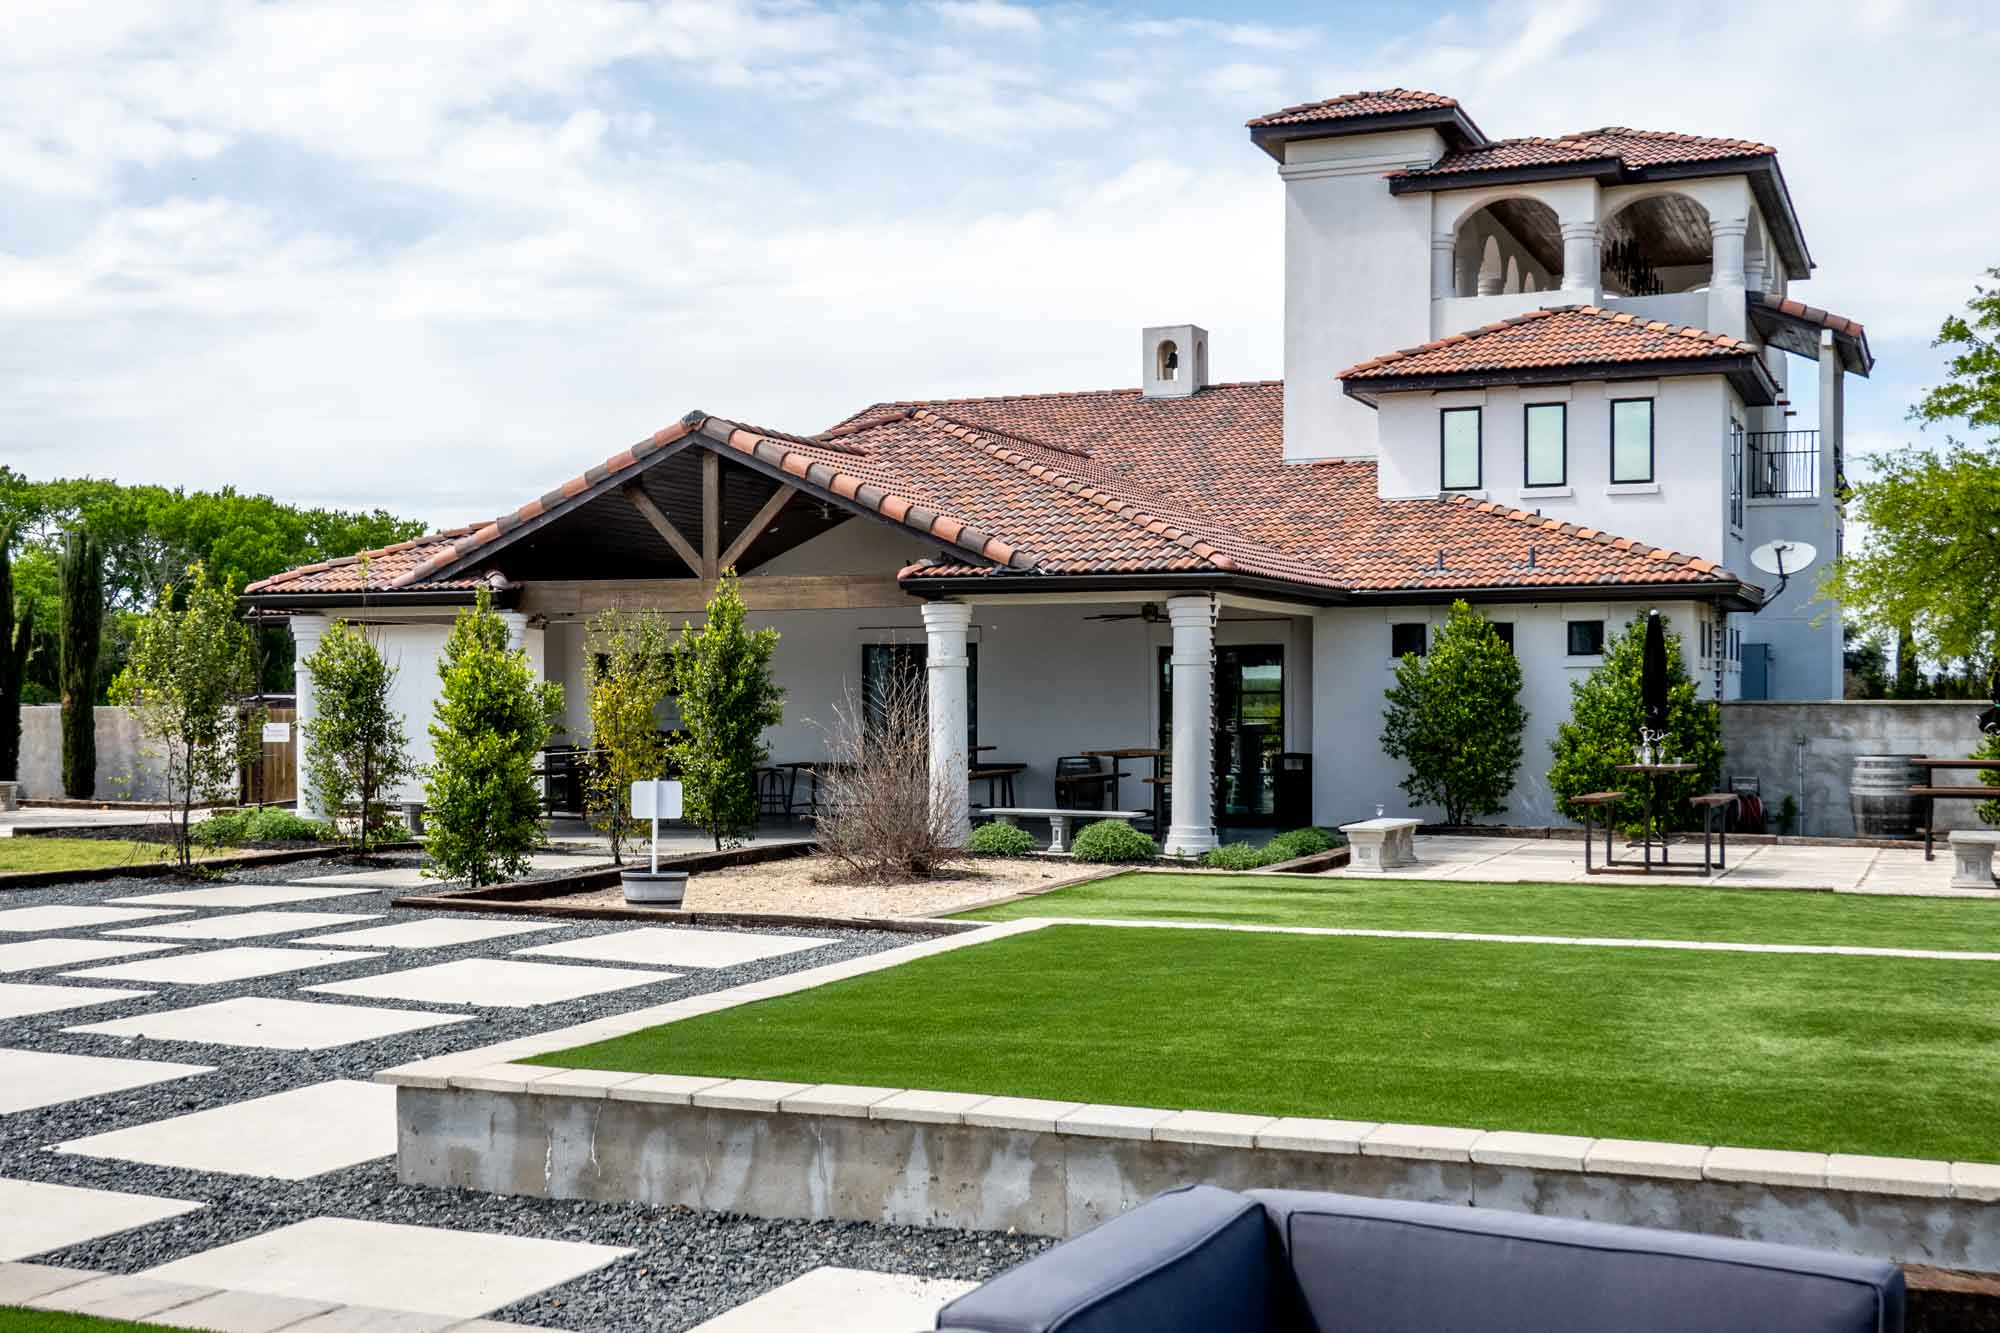 Patio area outside a large white building with a terra cotta tile roof